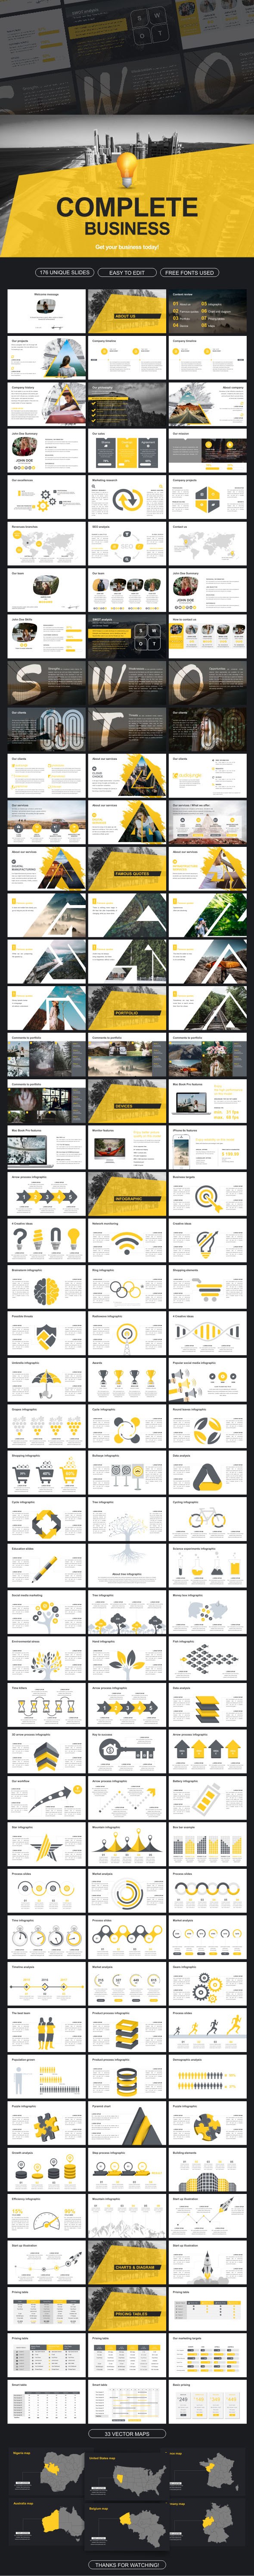 Complete Business Google Slides